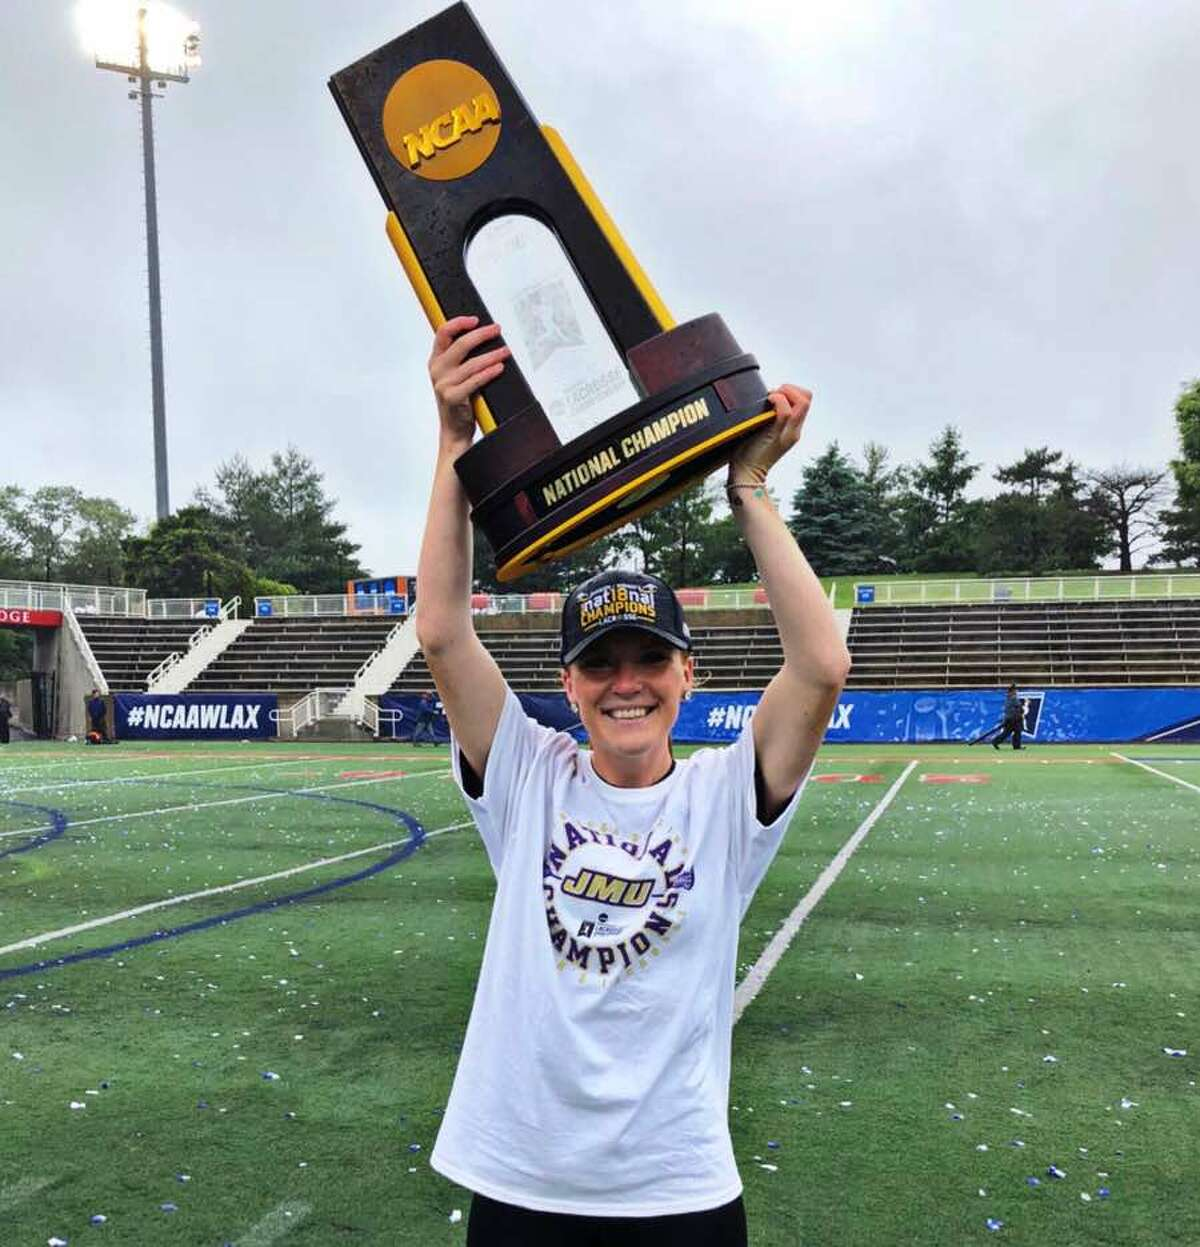 Shannon Quinlan hoists the NCAA Division I women's lacrosse championship trophy after James Madison's win over Boston College in the finals on May 27 in Stony Brook, N.Y.